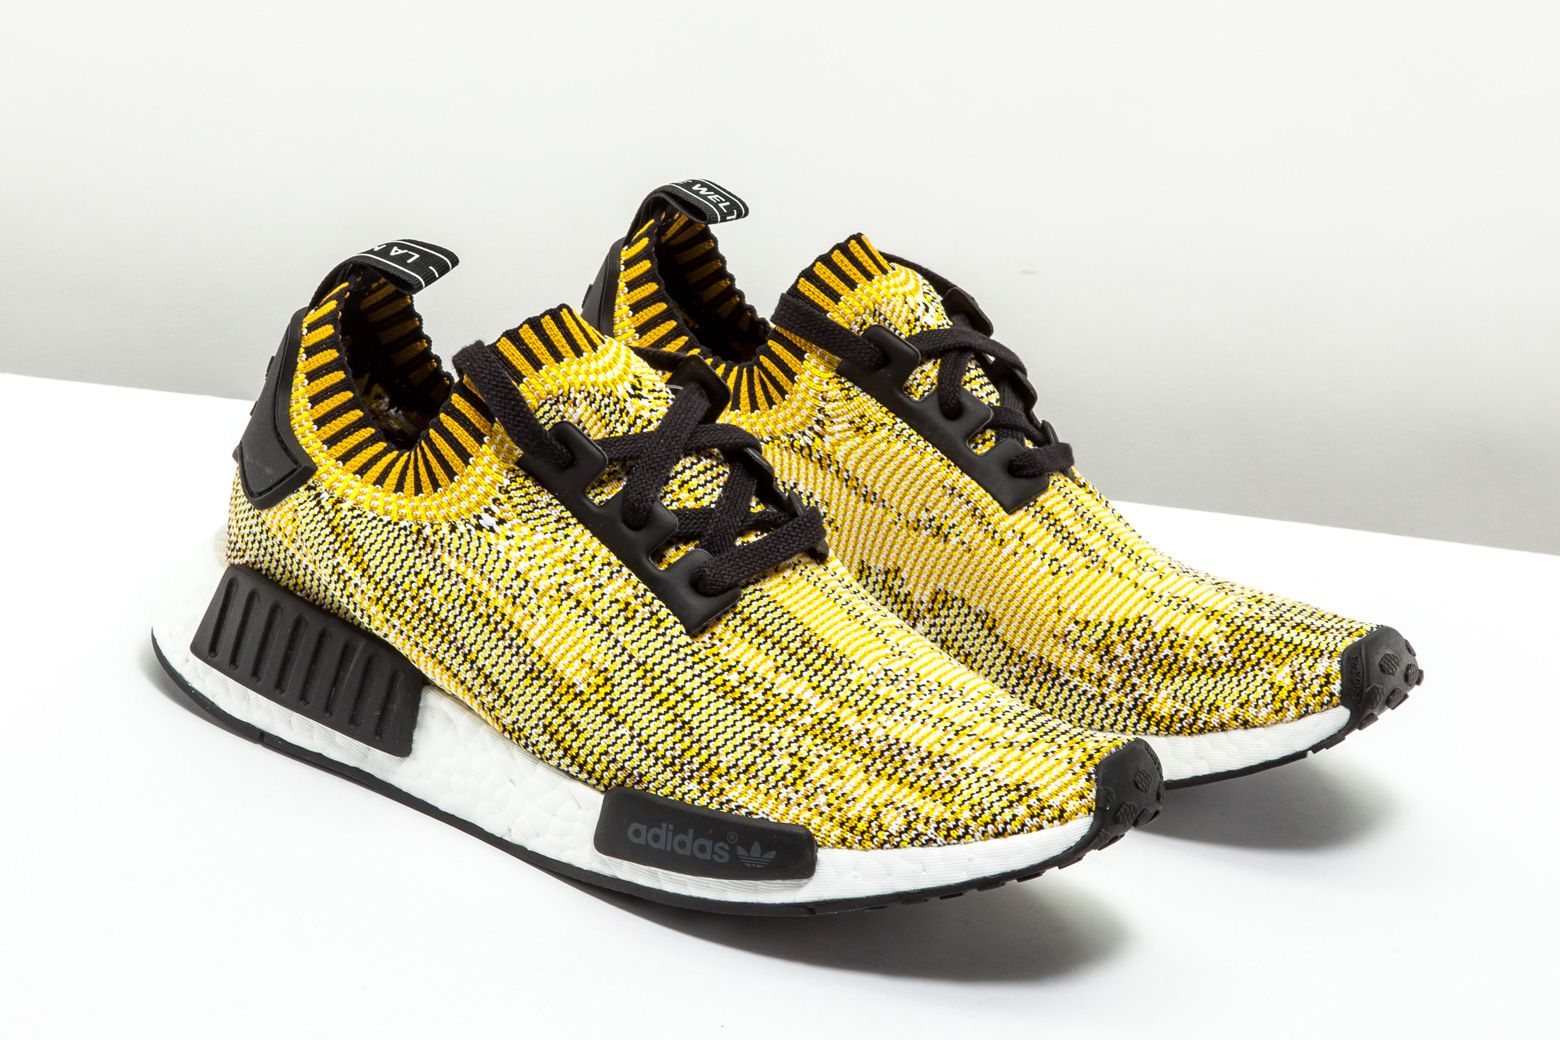 adidas dressed this 2016 NMD Runner Primeknit release in an eye-catching